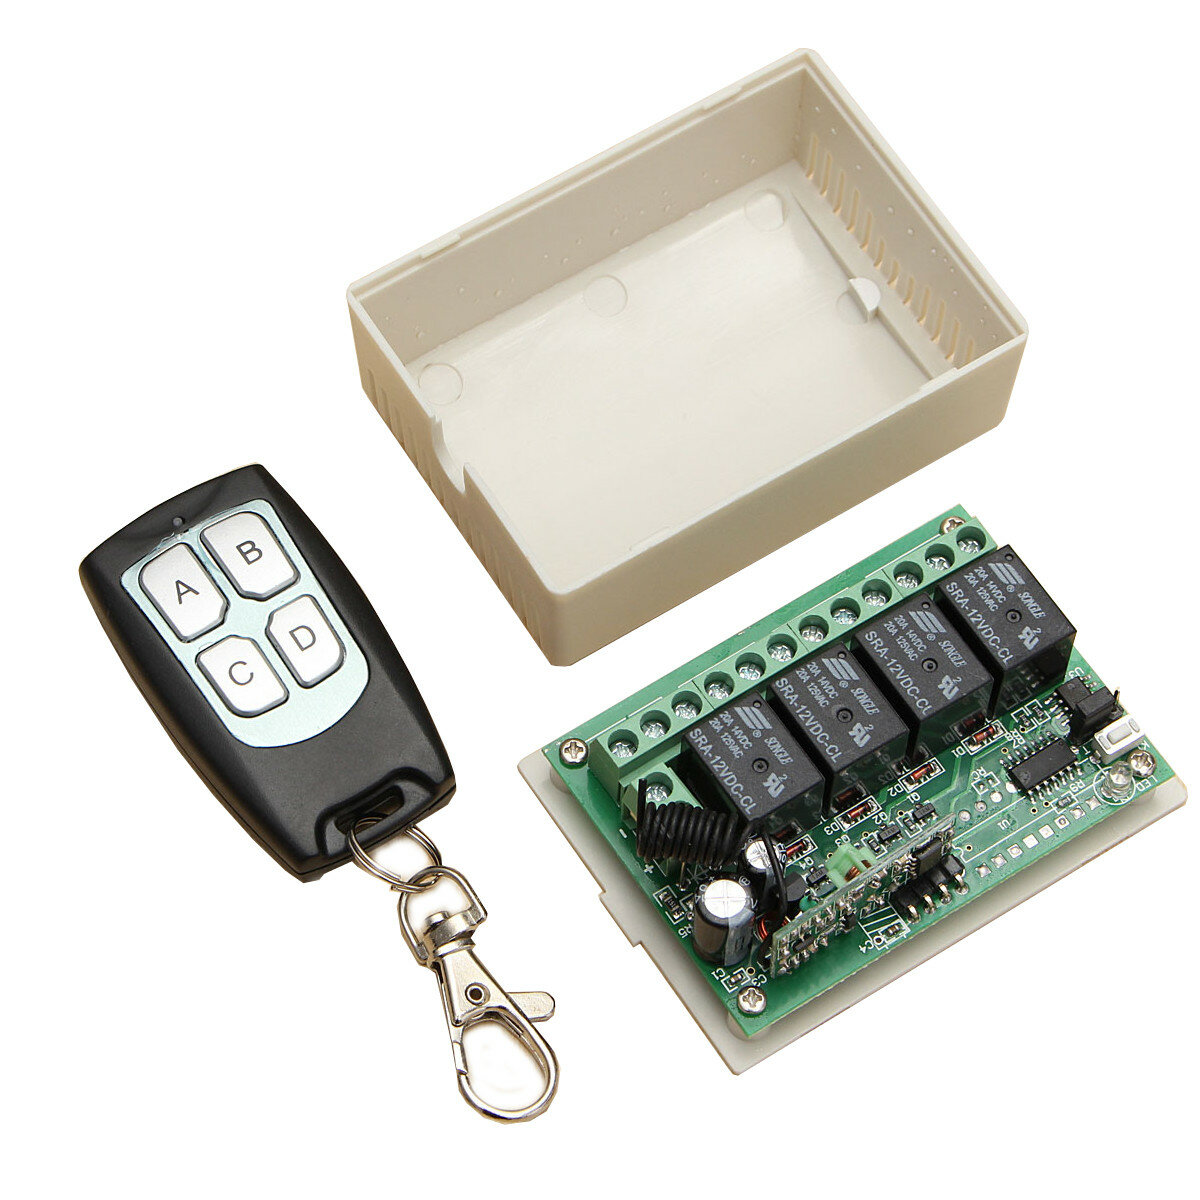 Tv Remote As A Cordless Mouse For The Computer Using Microcontroller